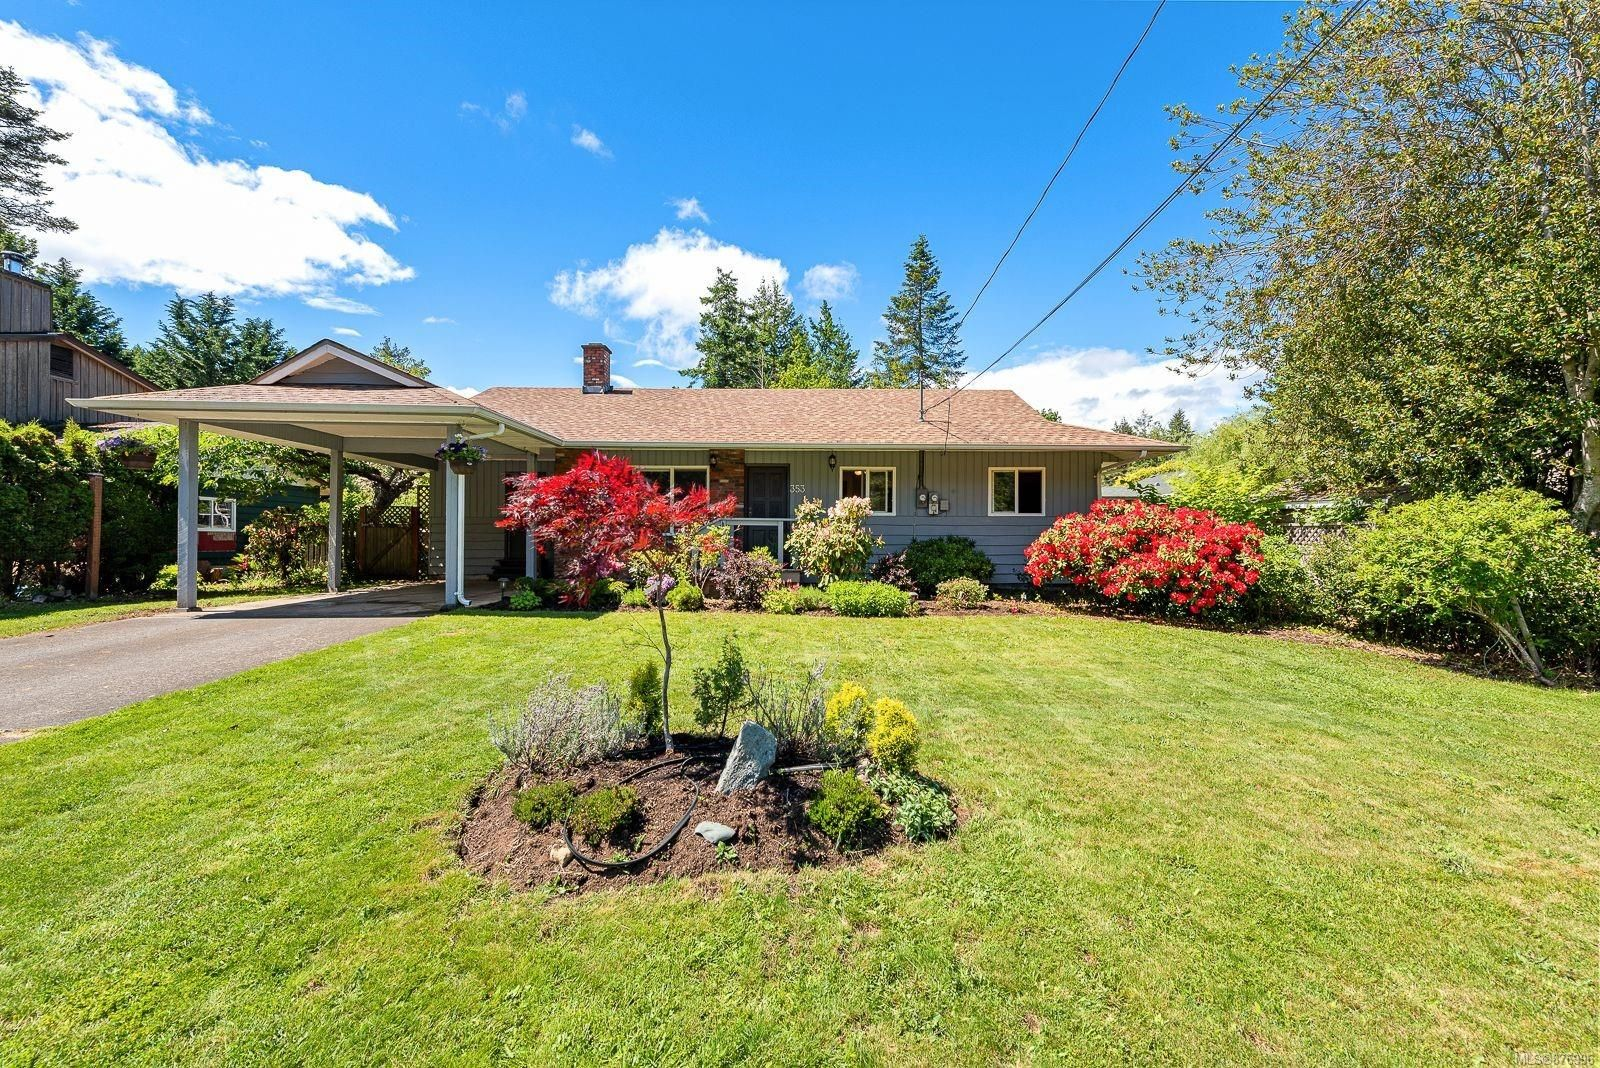 Main Photo: 353 Pritchard Rd in : CV Comox (Town of) House for sale (Comox Valley)  : MLS®# 876996